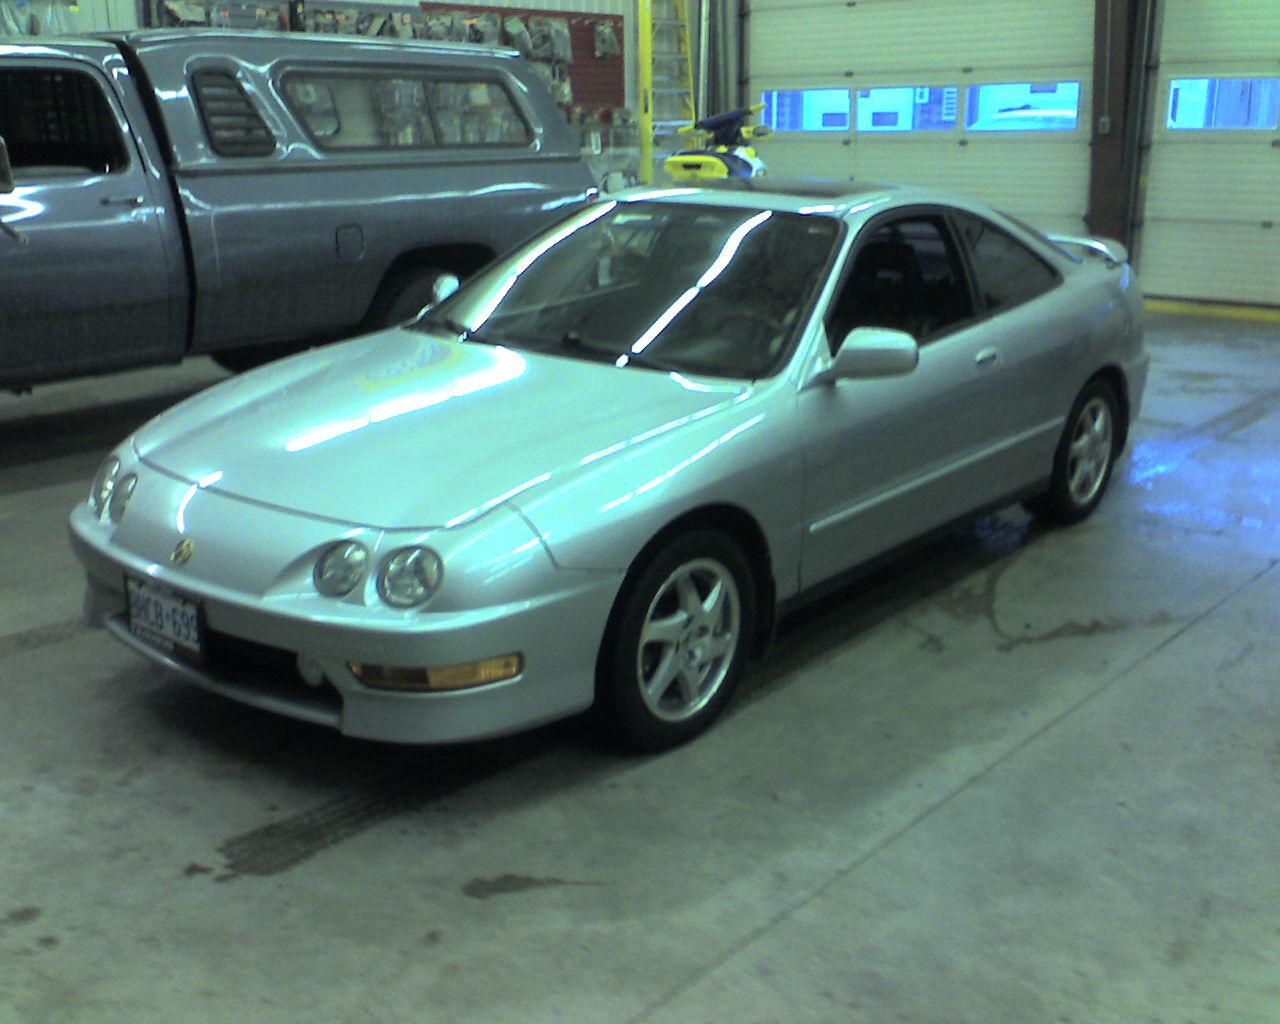 JDM_TWIN_TURBO 2001 Acura Integra 18905337